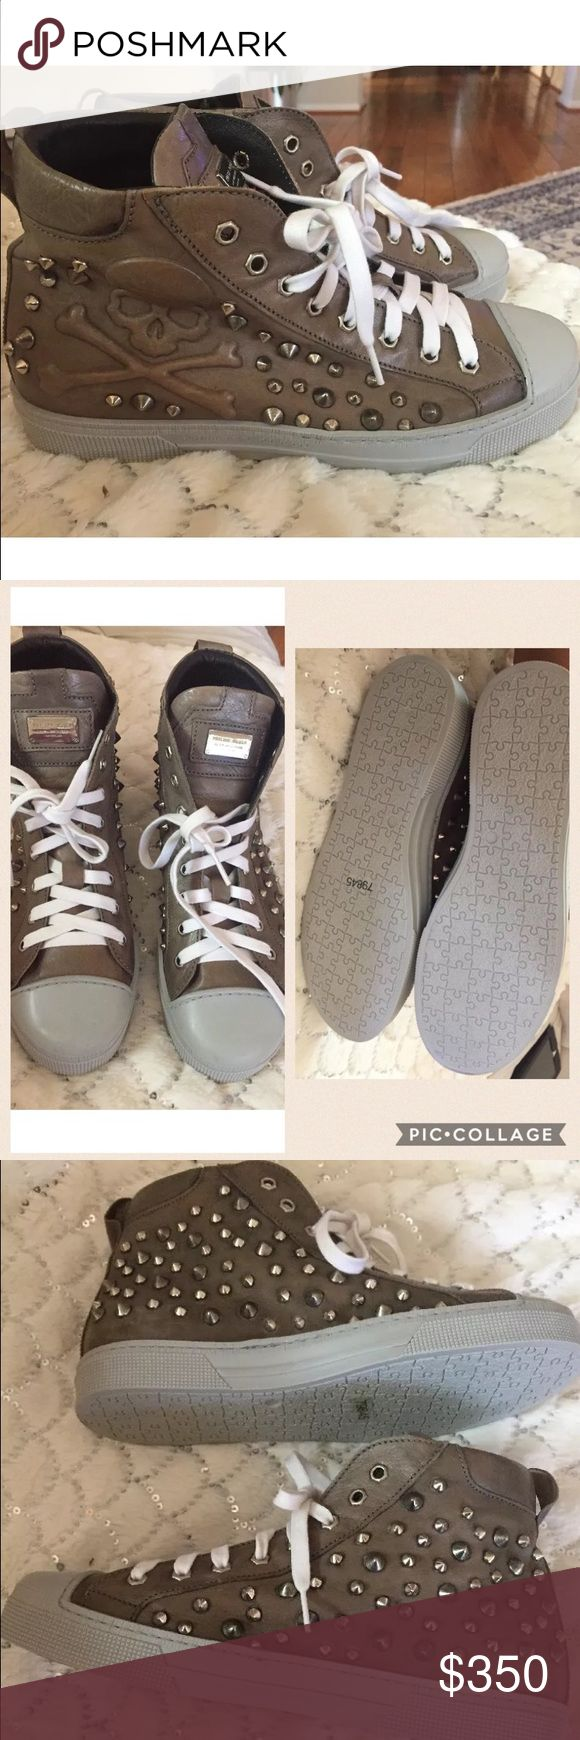 100% Authentic PHILIPP PLEIN Sneakers size 41. Never used, this were y sons shoes that he never used but kept in the closet for while so they are not in perfect condition but nothing mayor. They are made out leather and have studies on them. Made in Italy no box included. Reasonable offers are welcome🚫 no trades please. This item can't be bundled sorry. Philipp Plein Shoes Sneakers